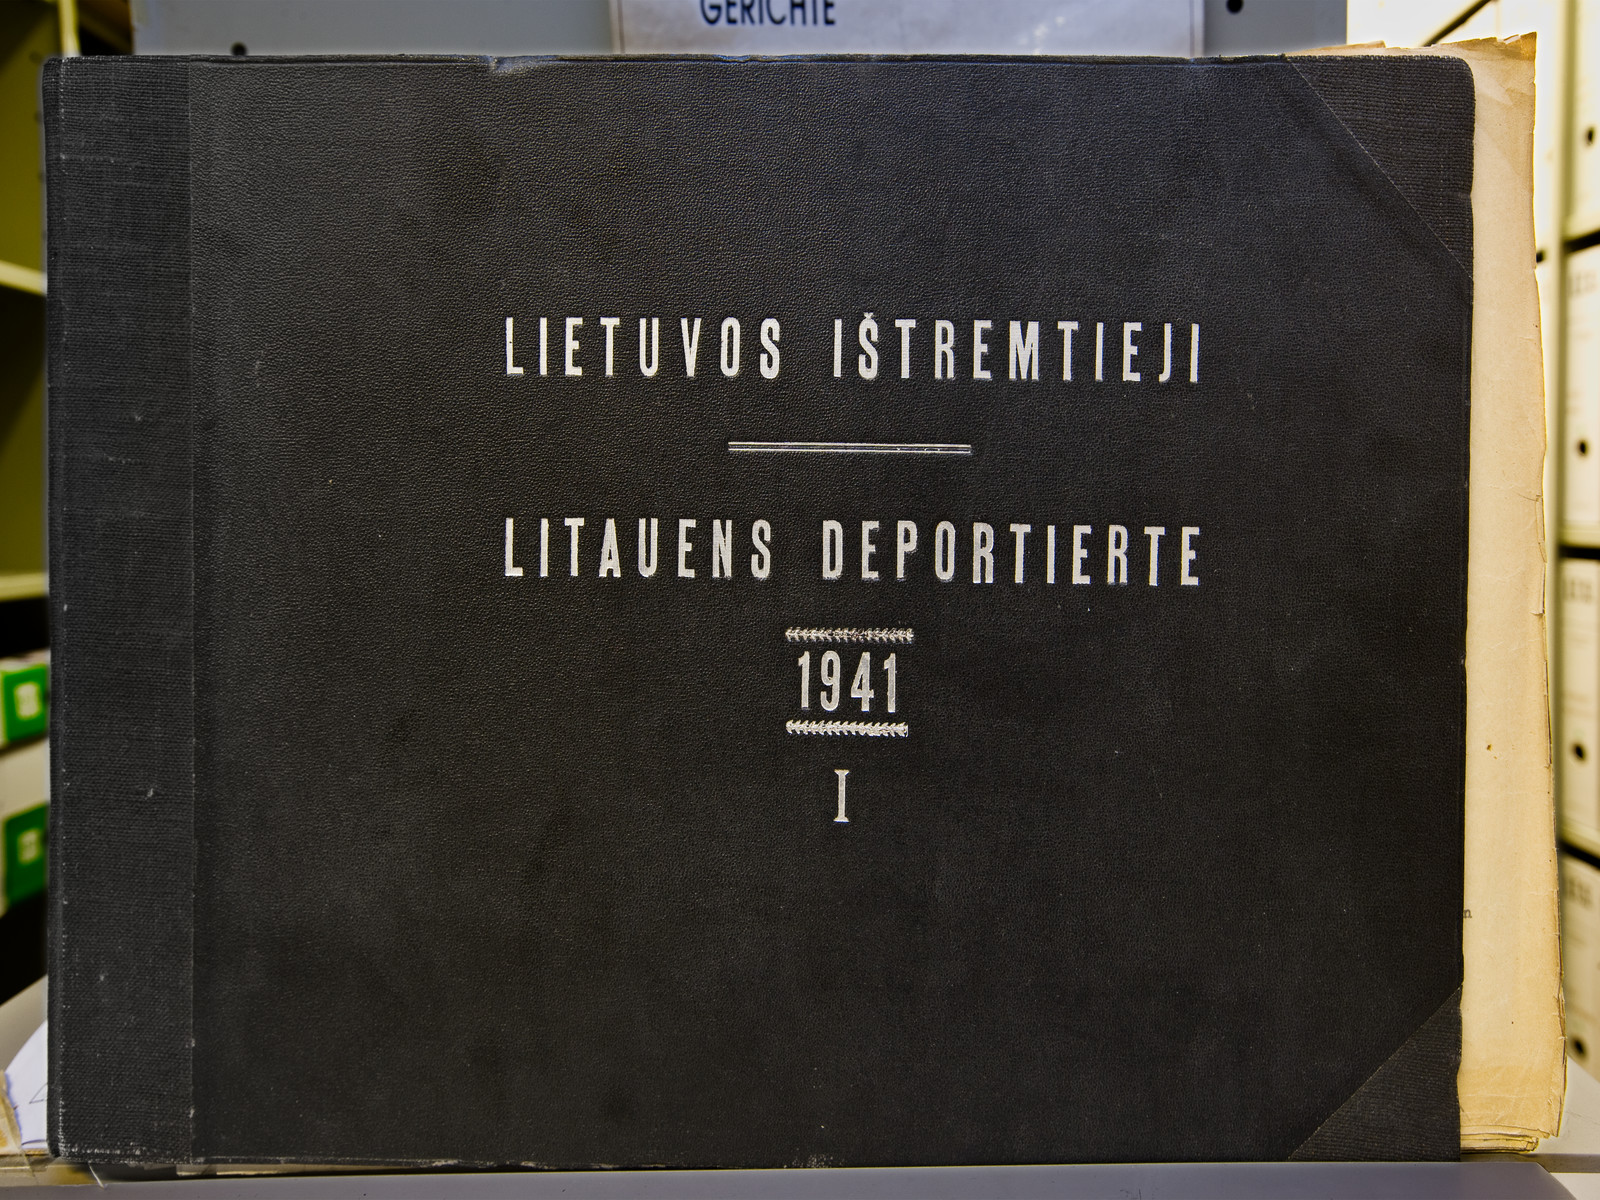 Front cover of I.T.S. Lithuanian deportation book of 1941.